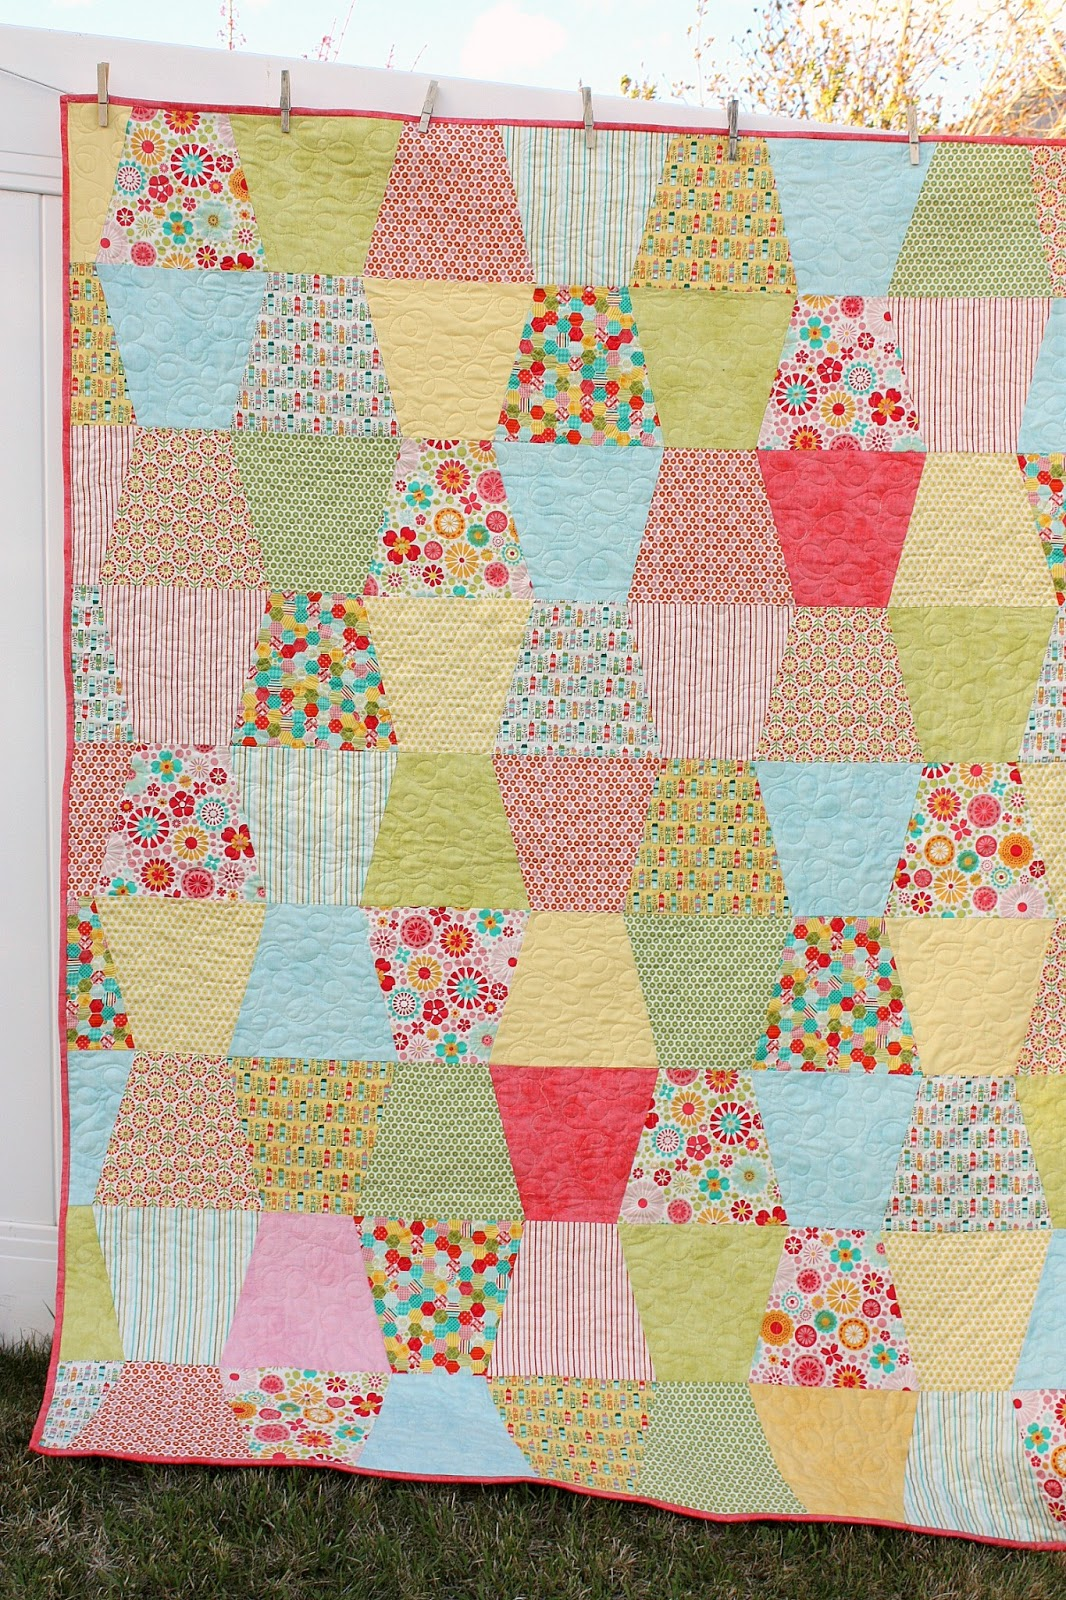 1600+Quilt+Tutorial When you go to sew the rows together, the seam ...: http://www.pic2fly.com/1600+Quilt+Tutorial.html